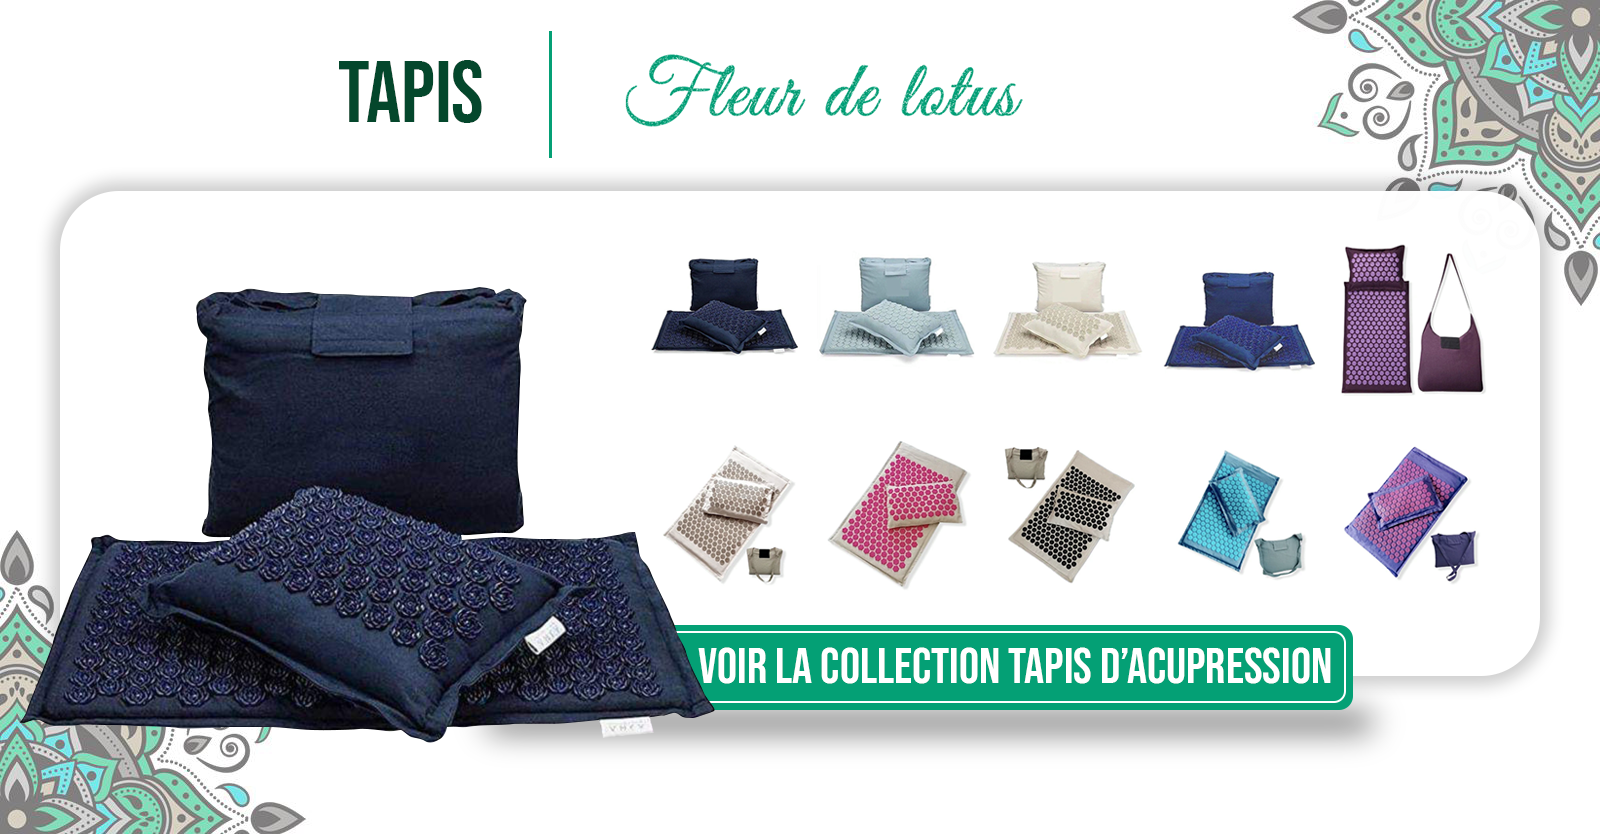 https://royal-lotus.fr/collections/tapis-acupression-fleur-de-lotus